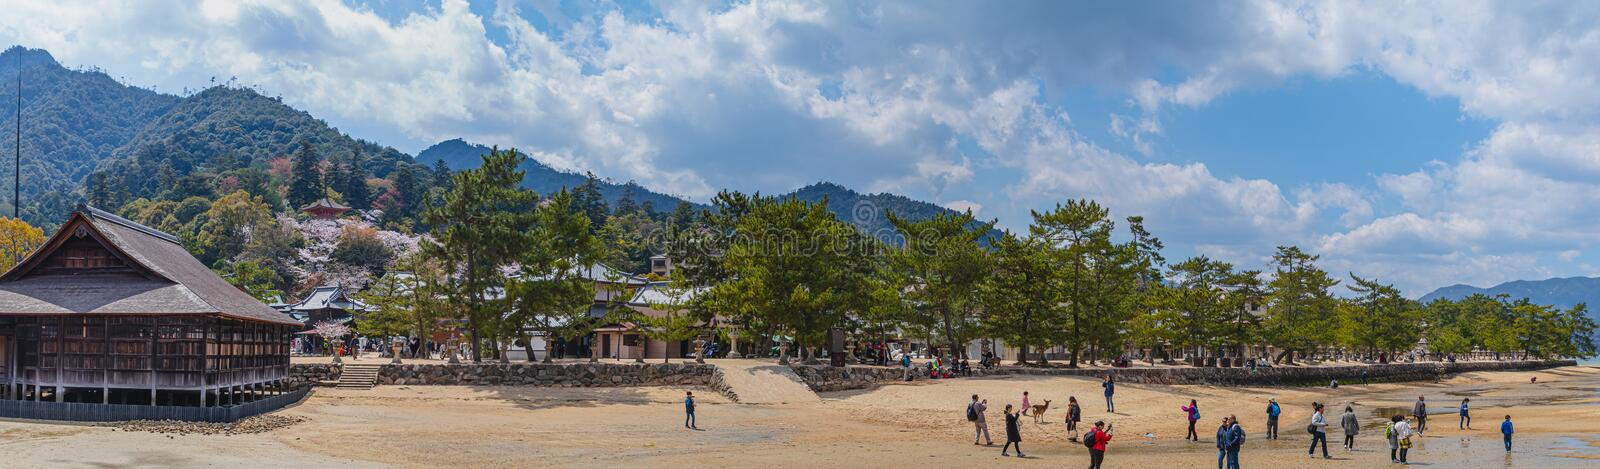 Landscape photo of the beach on Miyajima Island, Japan with Cherry blossoms. A Landscape photo of the beach on Miyajima Island, Japan with the pagoda and Cherry stock photography